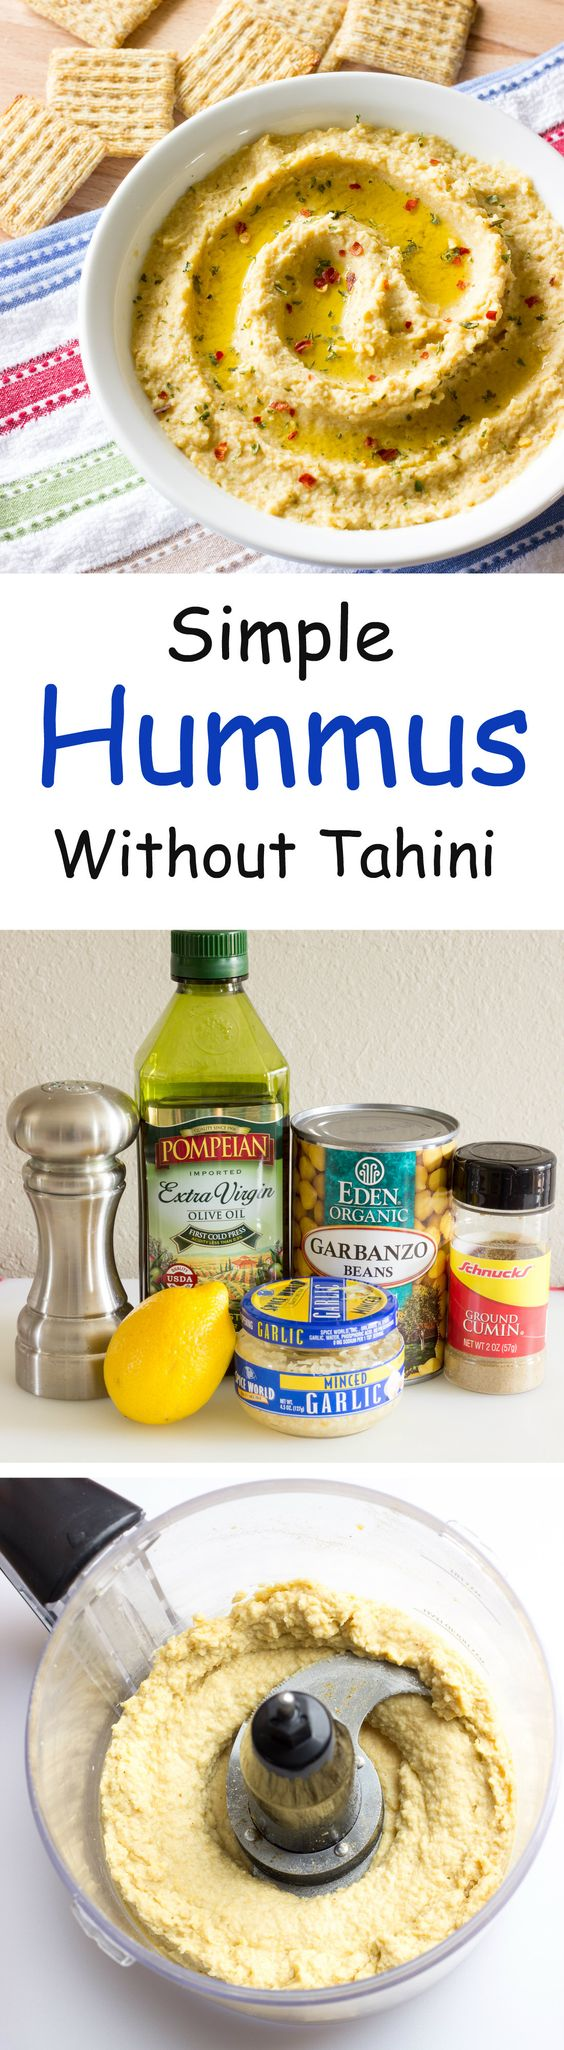 Simple hummus without tahini takes 5 minutes to prepare, uses common ingredients, and is so much cheaper than the packaged stuff.